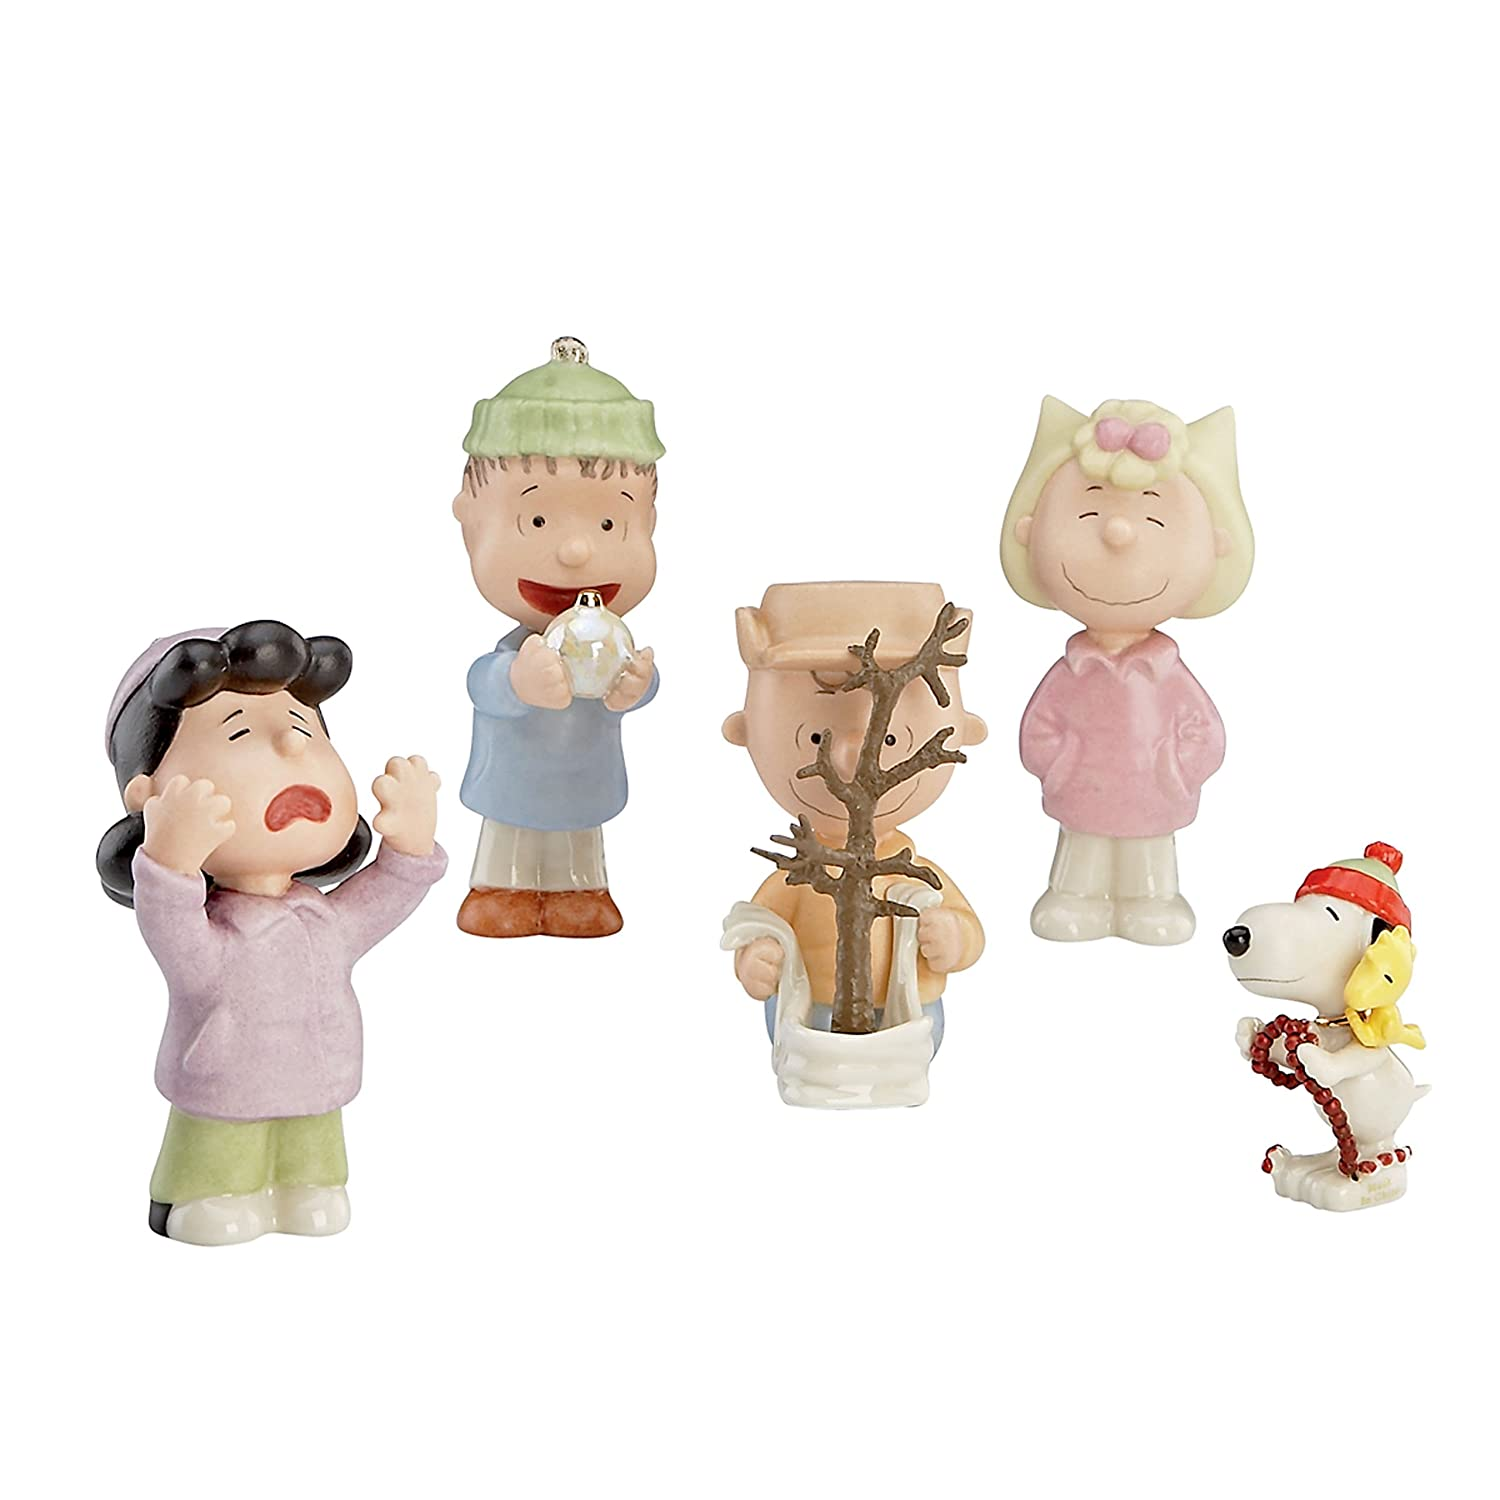 Amazoncom Lenox 5 Piece Thats What Christmas is All About Charlie